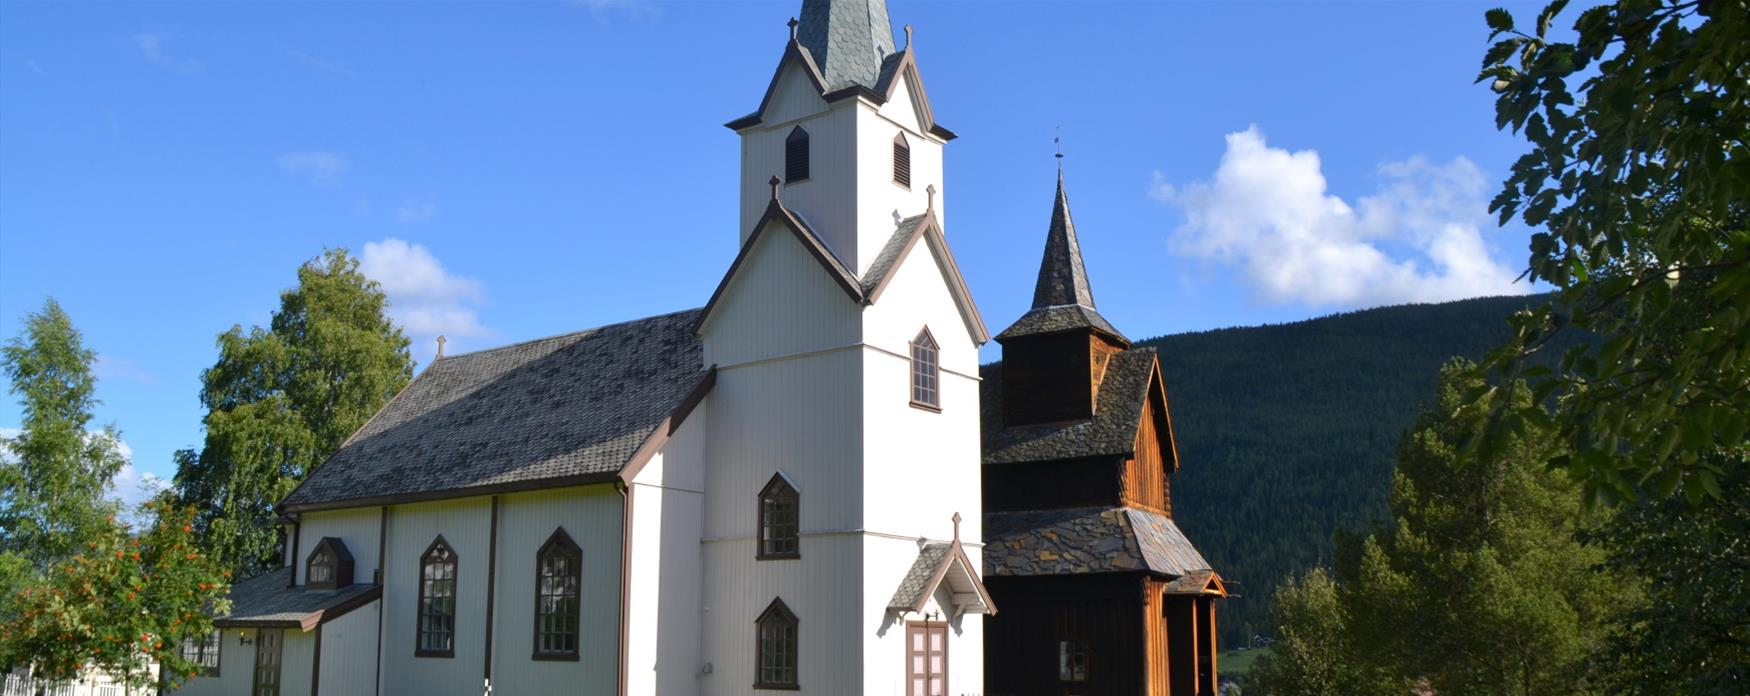 Church in Ål